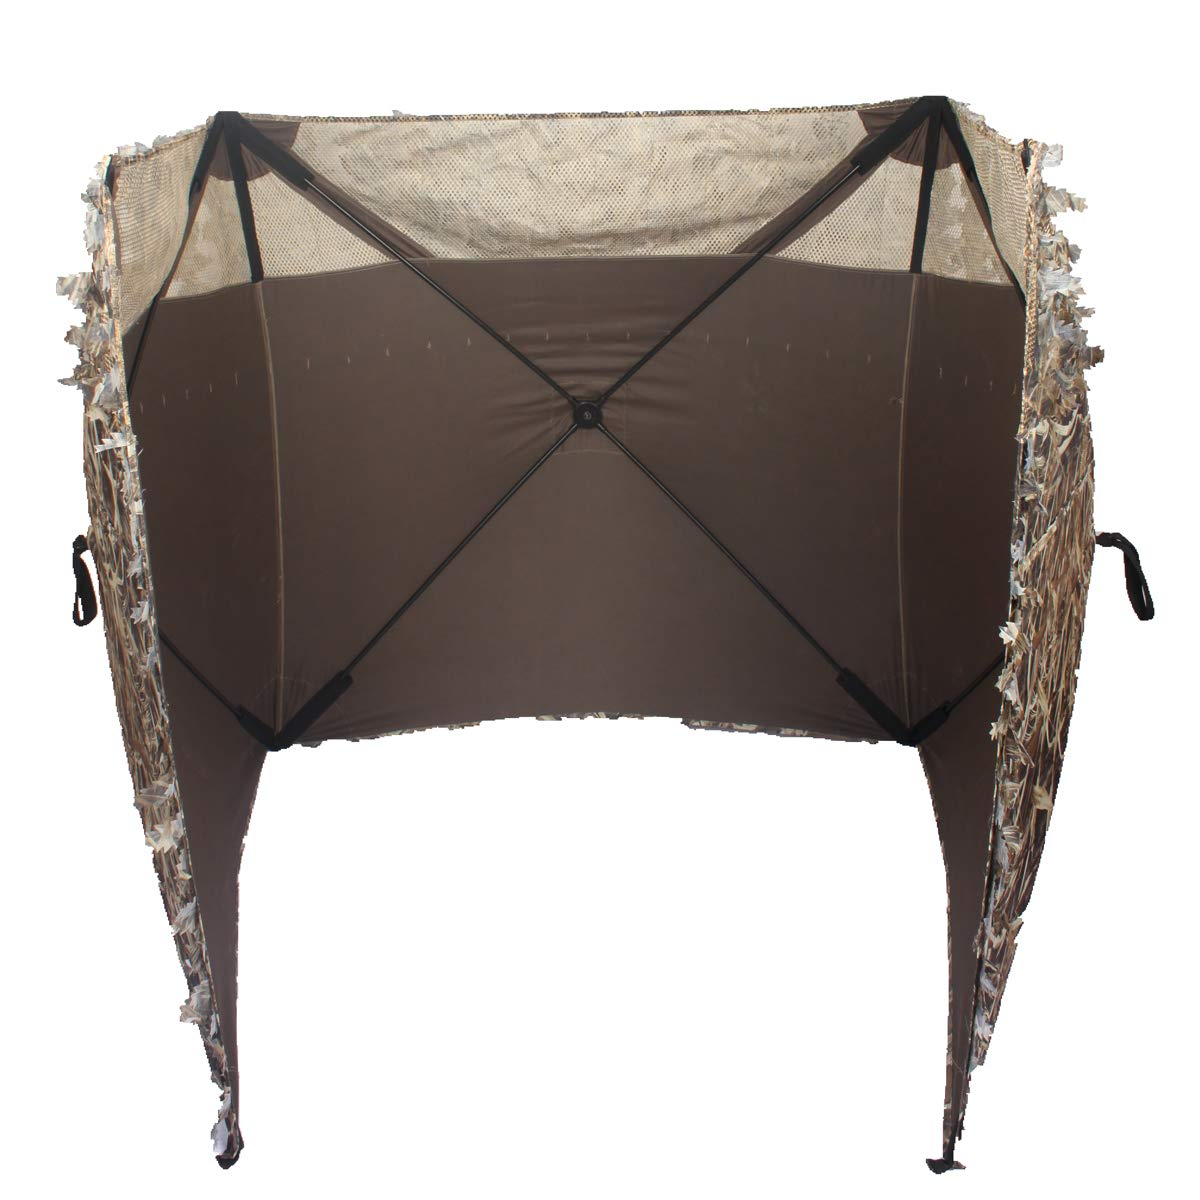 Auscamotek Pop Up Ground Blind For Turkey Deer Duck